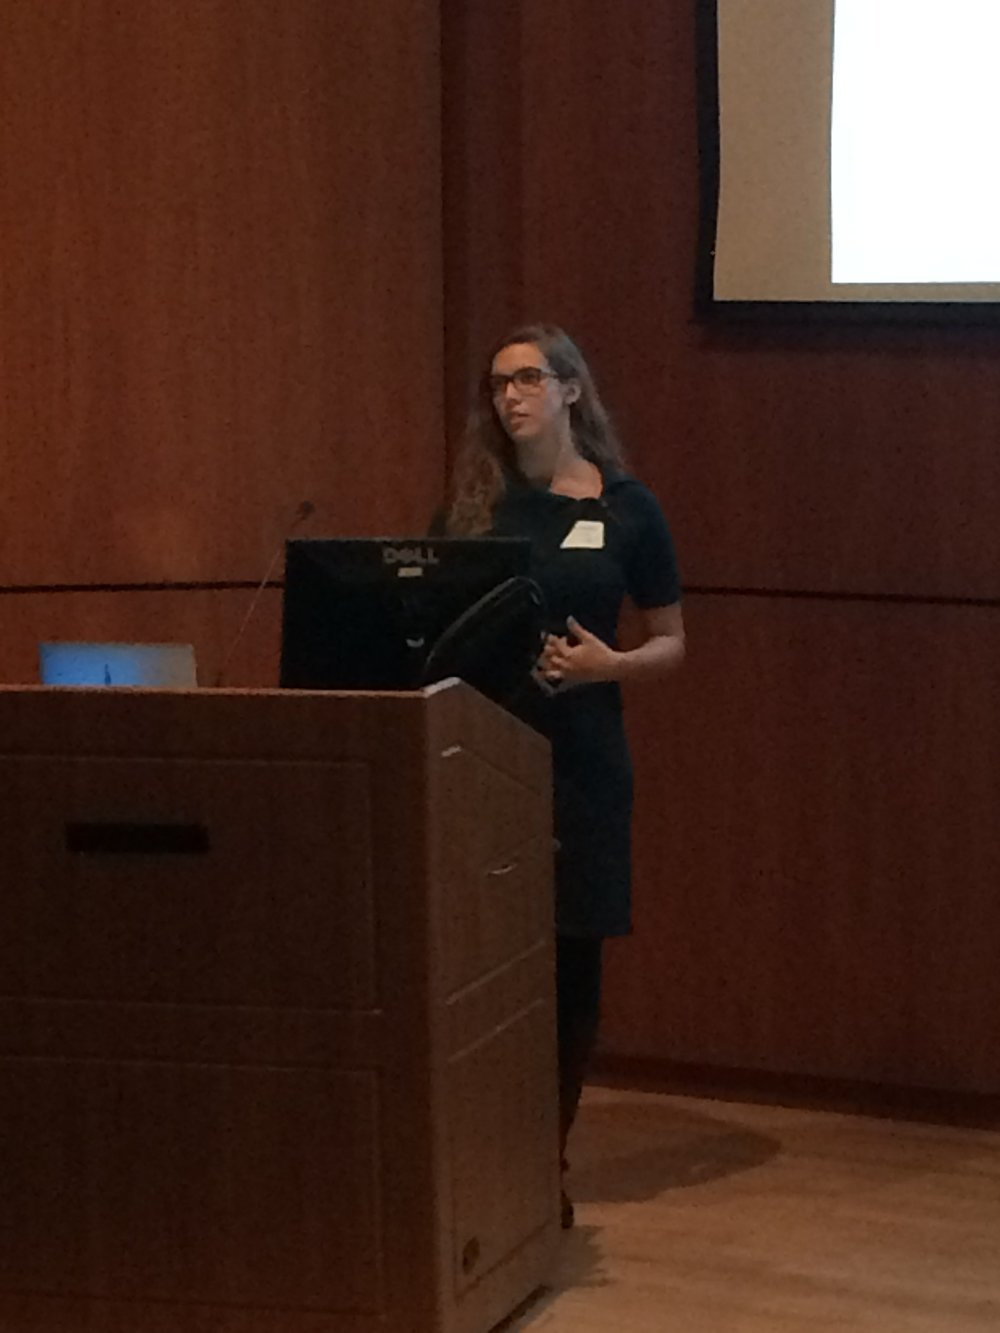 Kristen presenting at the 8th Annual LSRS.